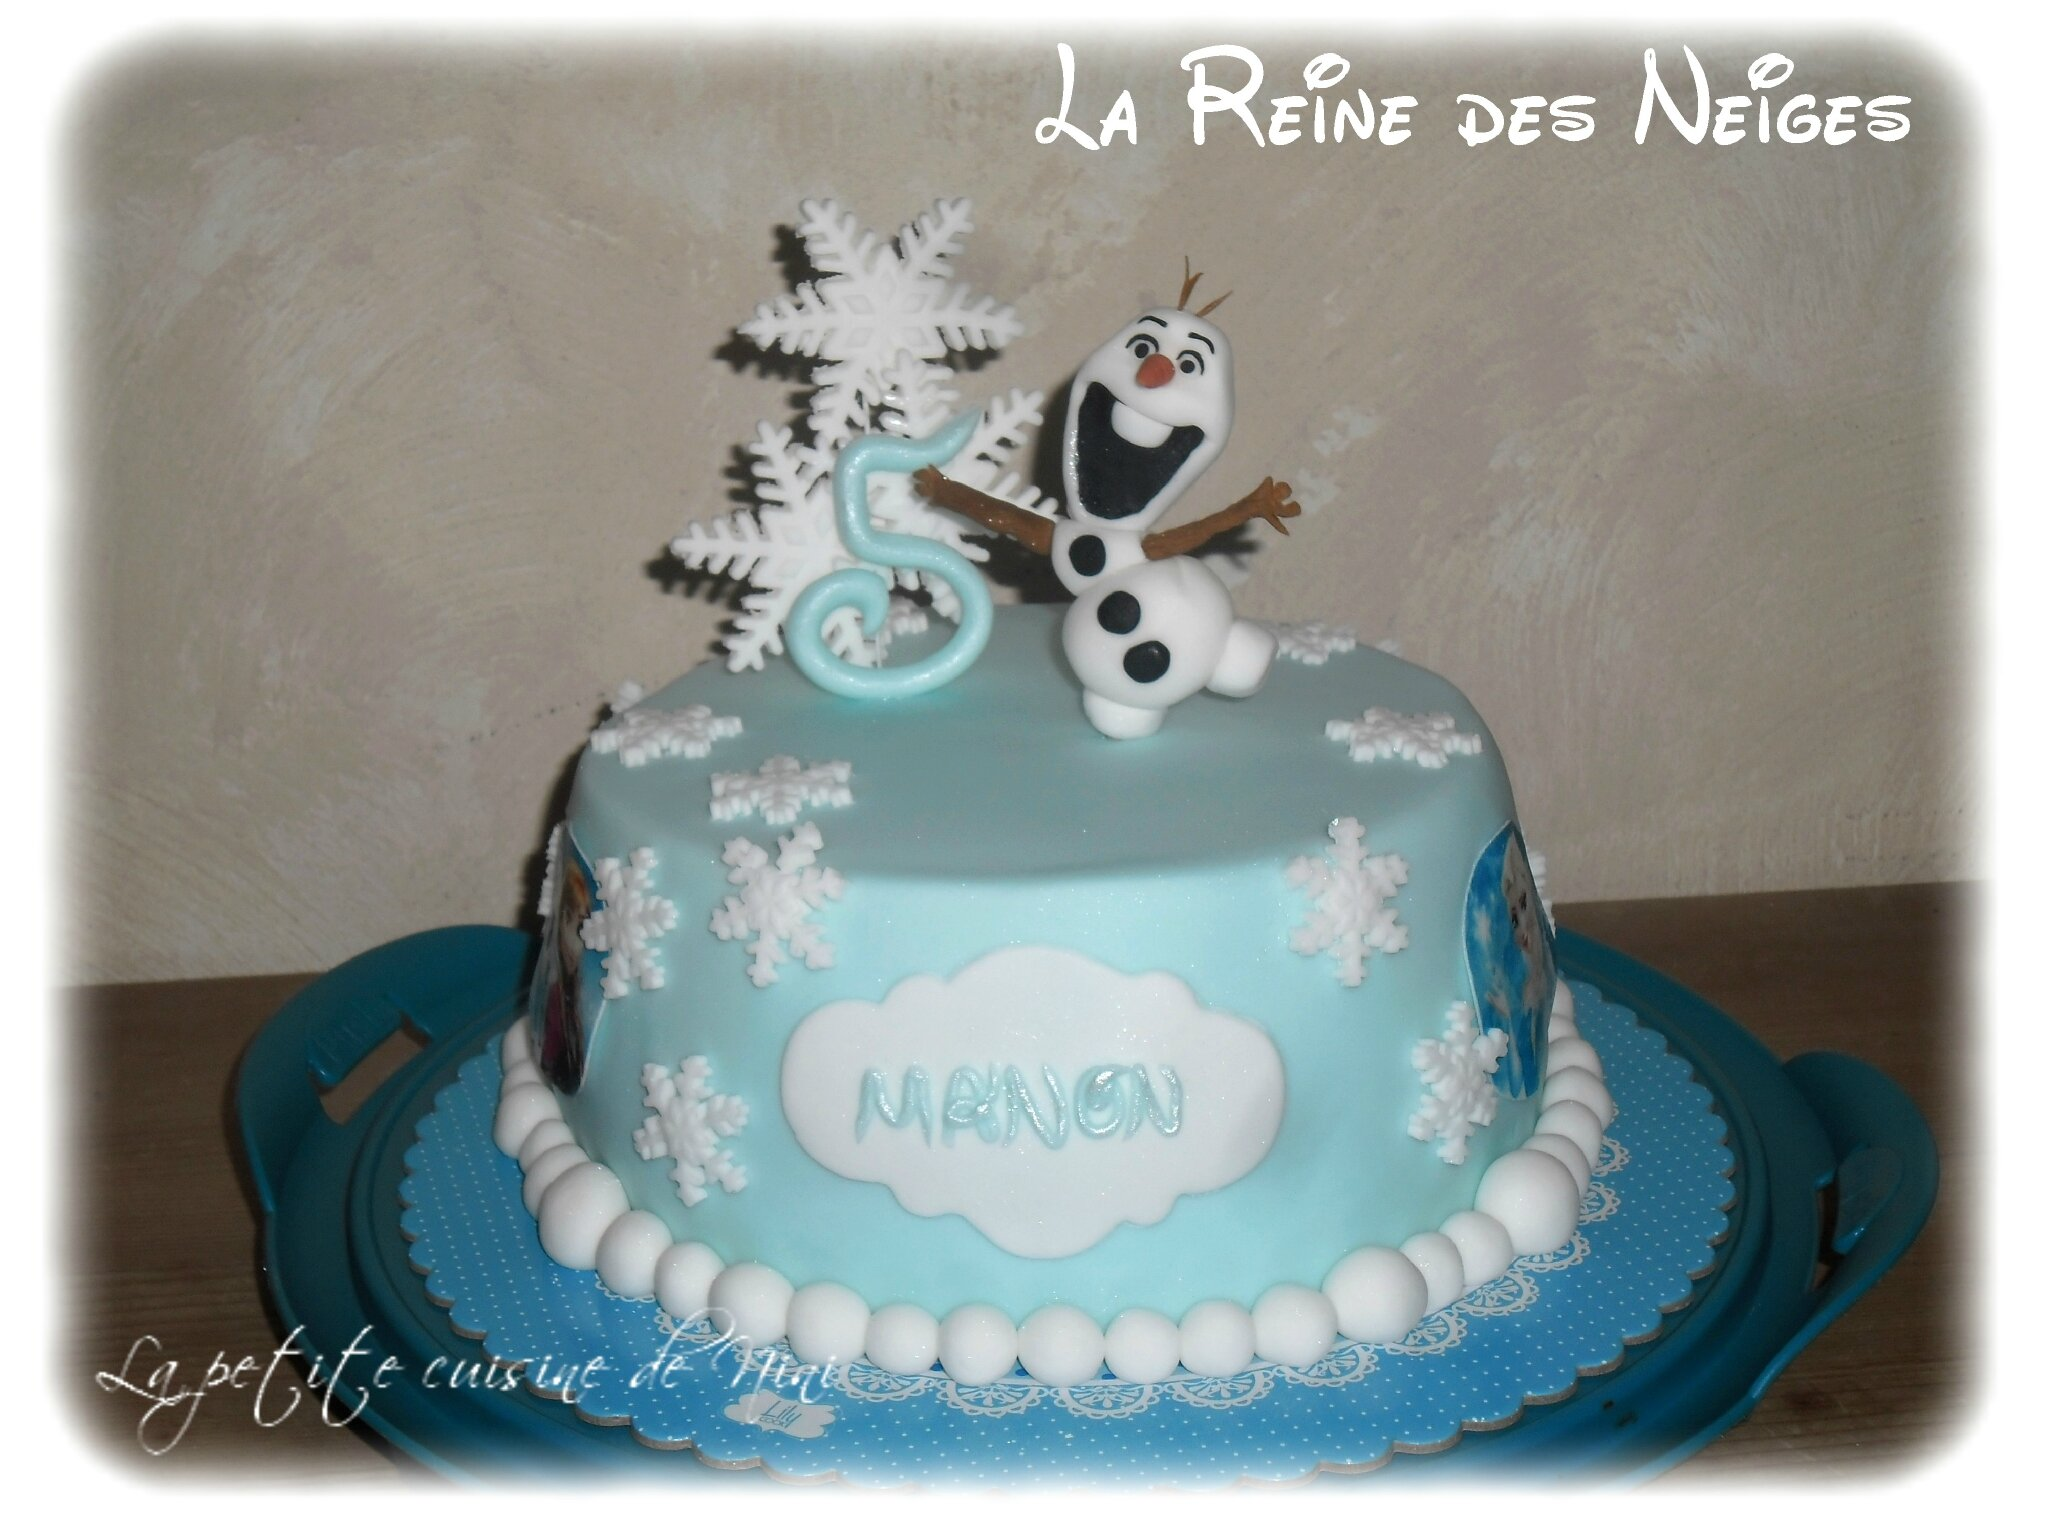 gateau anniversaire fille 5 ans reine des neiges arts. Black Bedroom Furniture Sets. Home Design Ideas